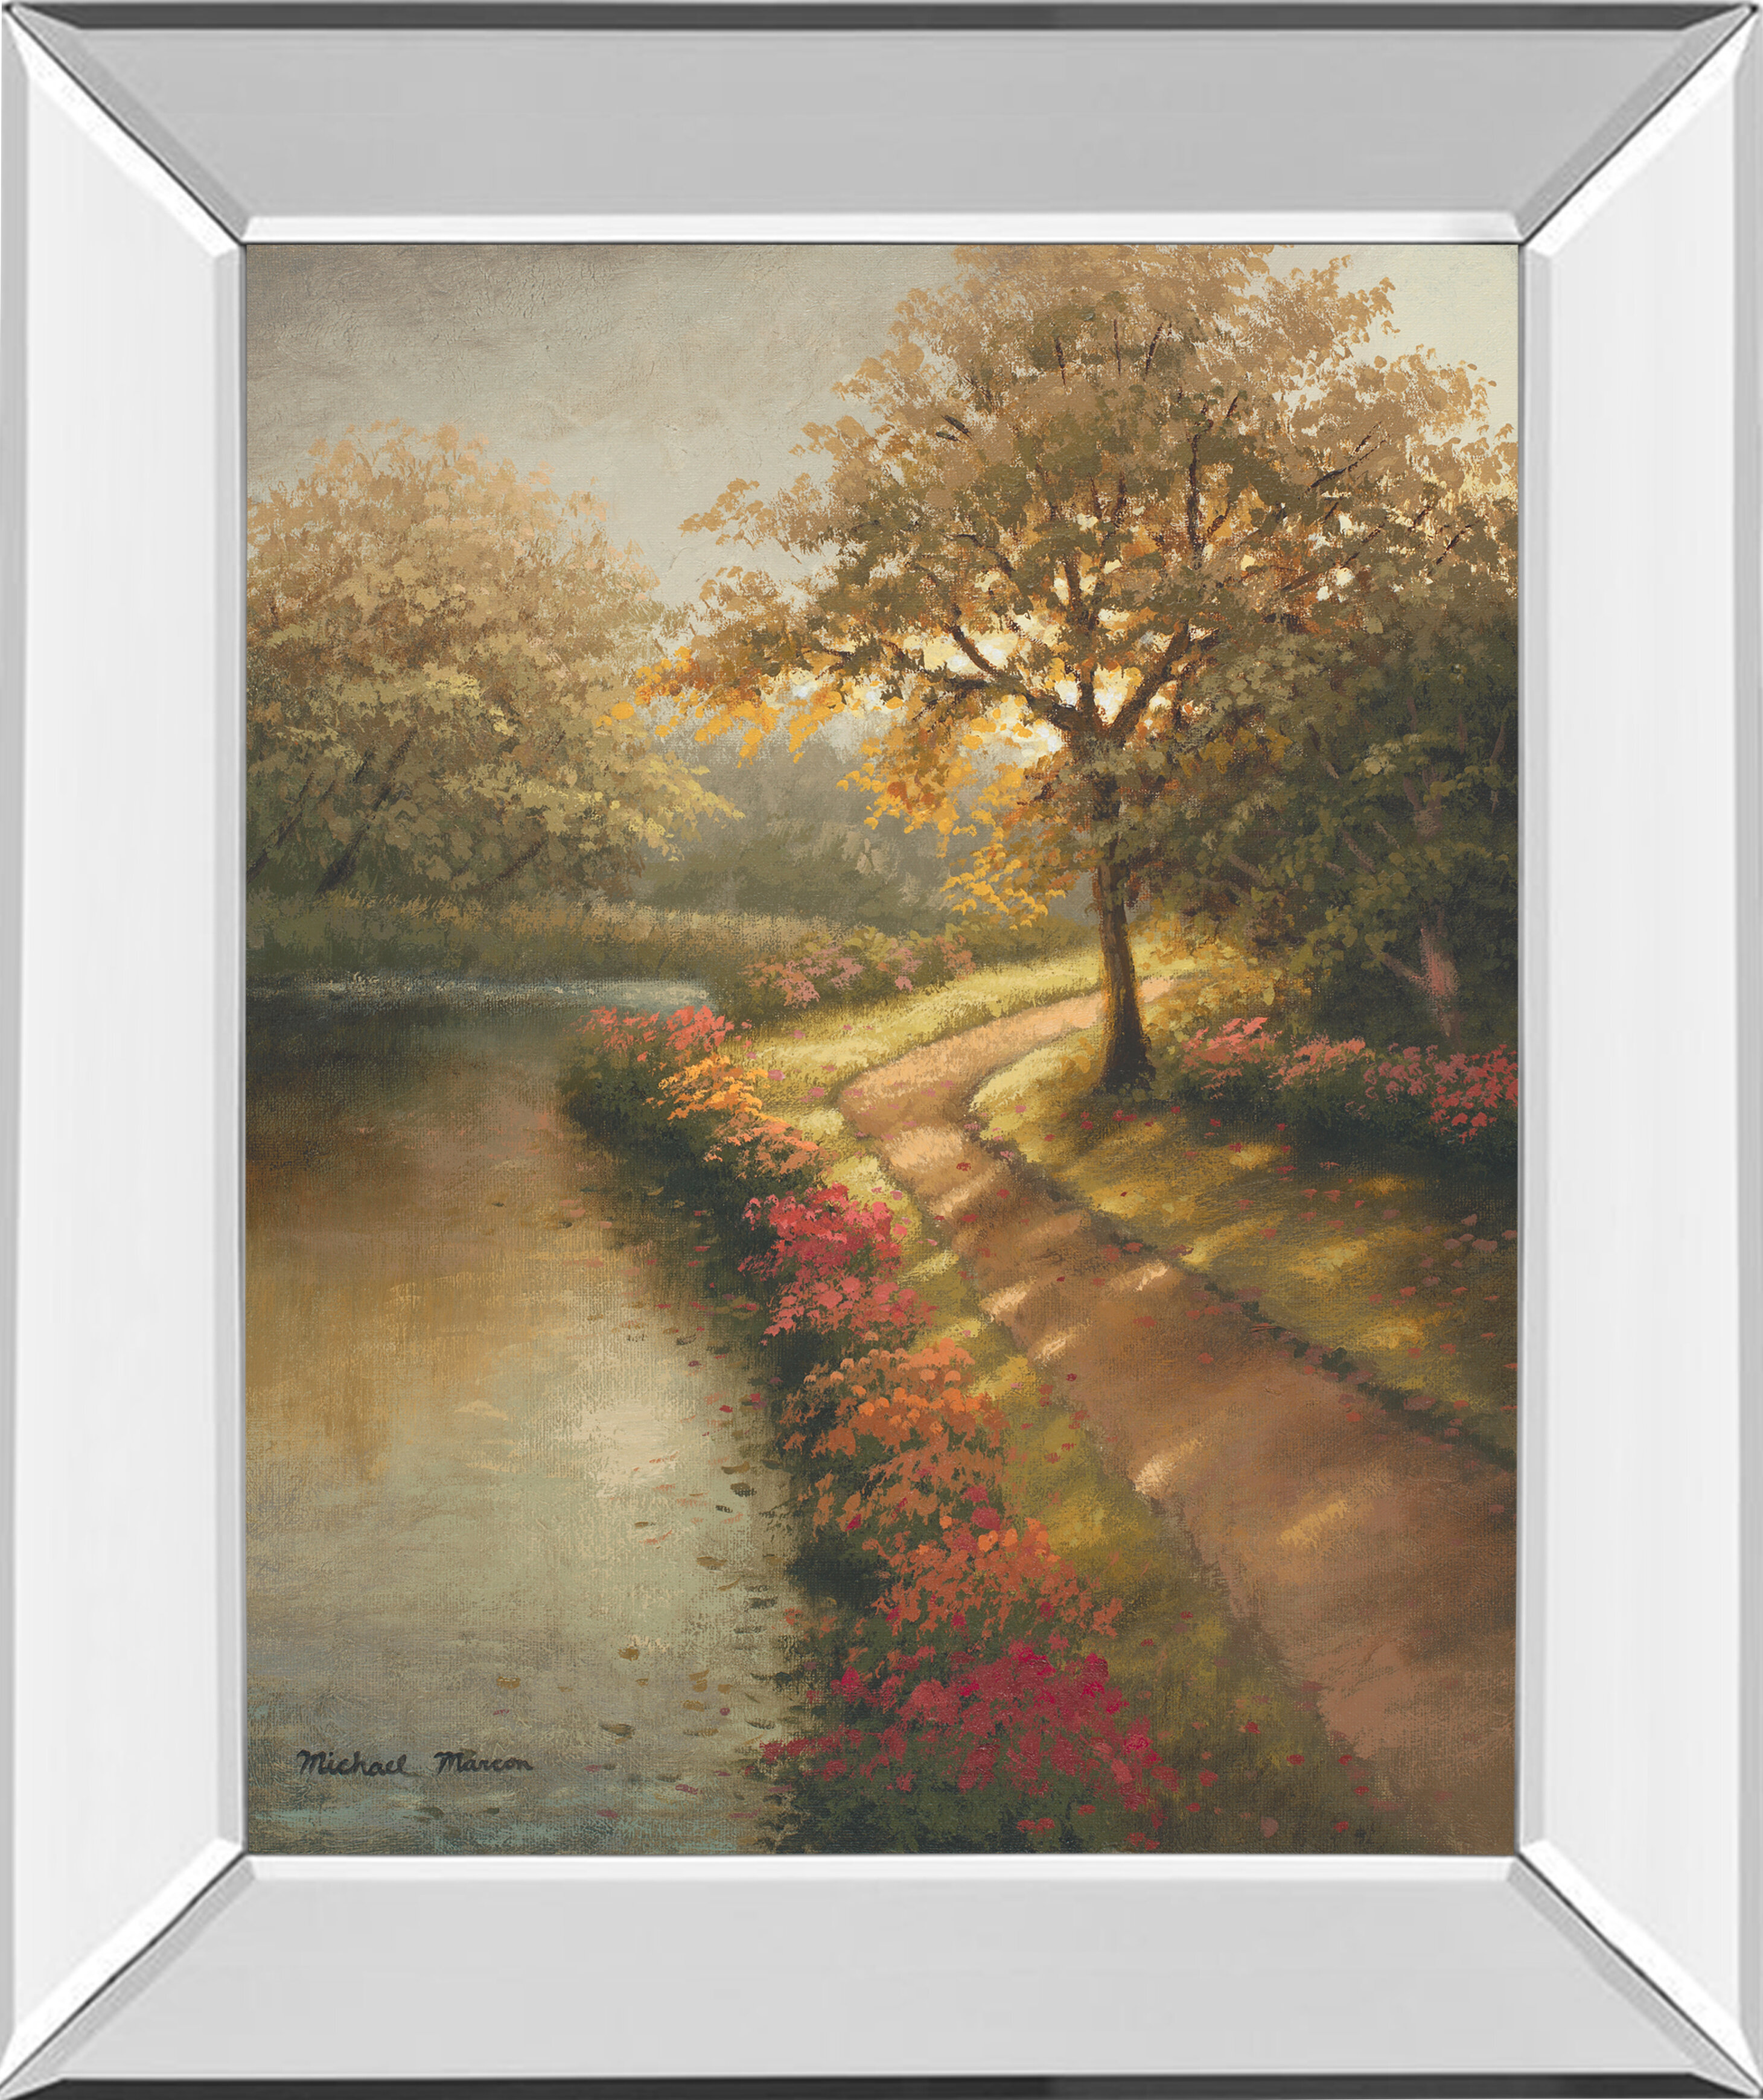 Other Plants Flowers Canora Grey Framed Art You Ll Love In 2021 Wayfair